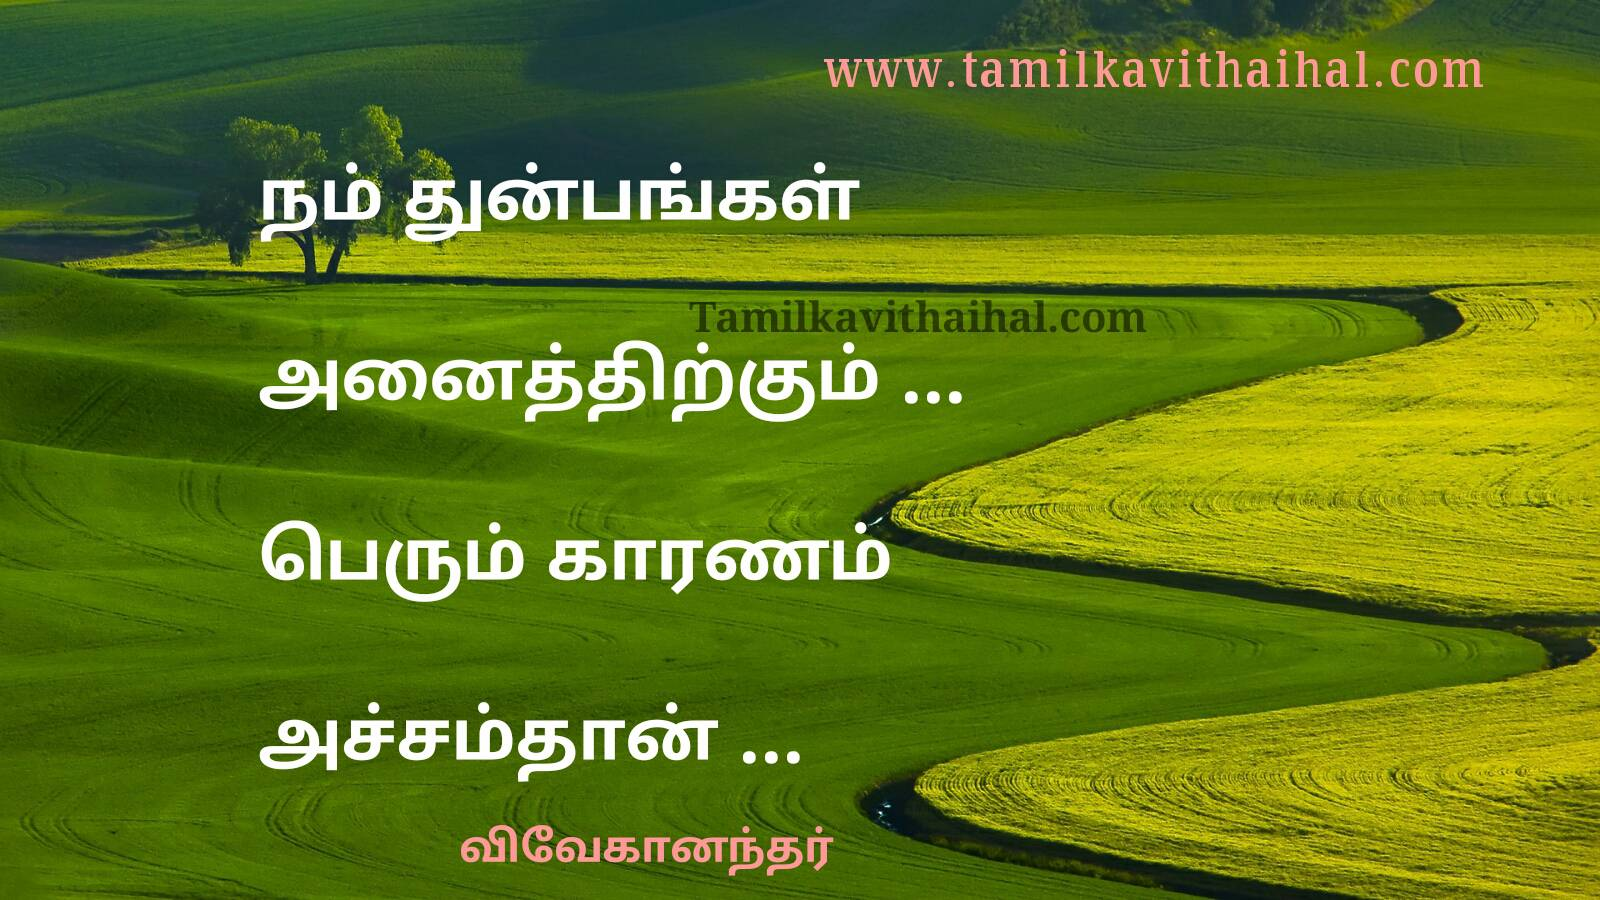 Best quotes for swami vivekanandhar in tamil about thunbam acham hd wallpaper download